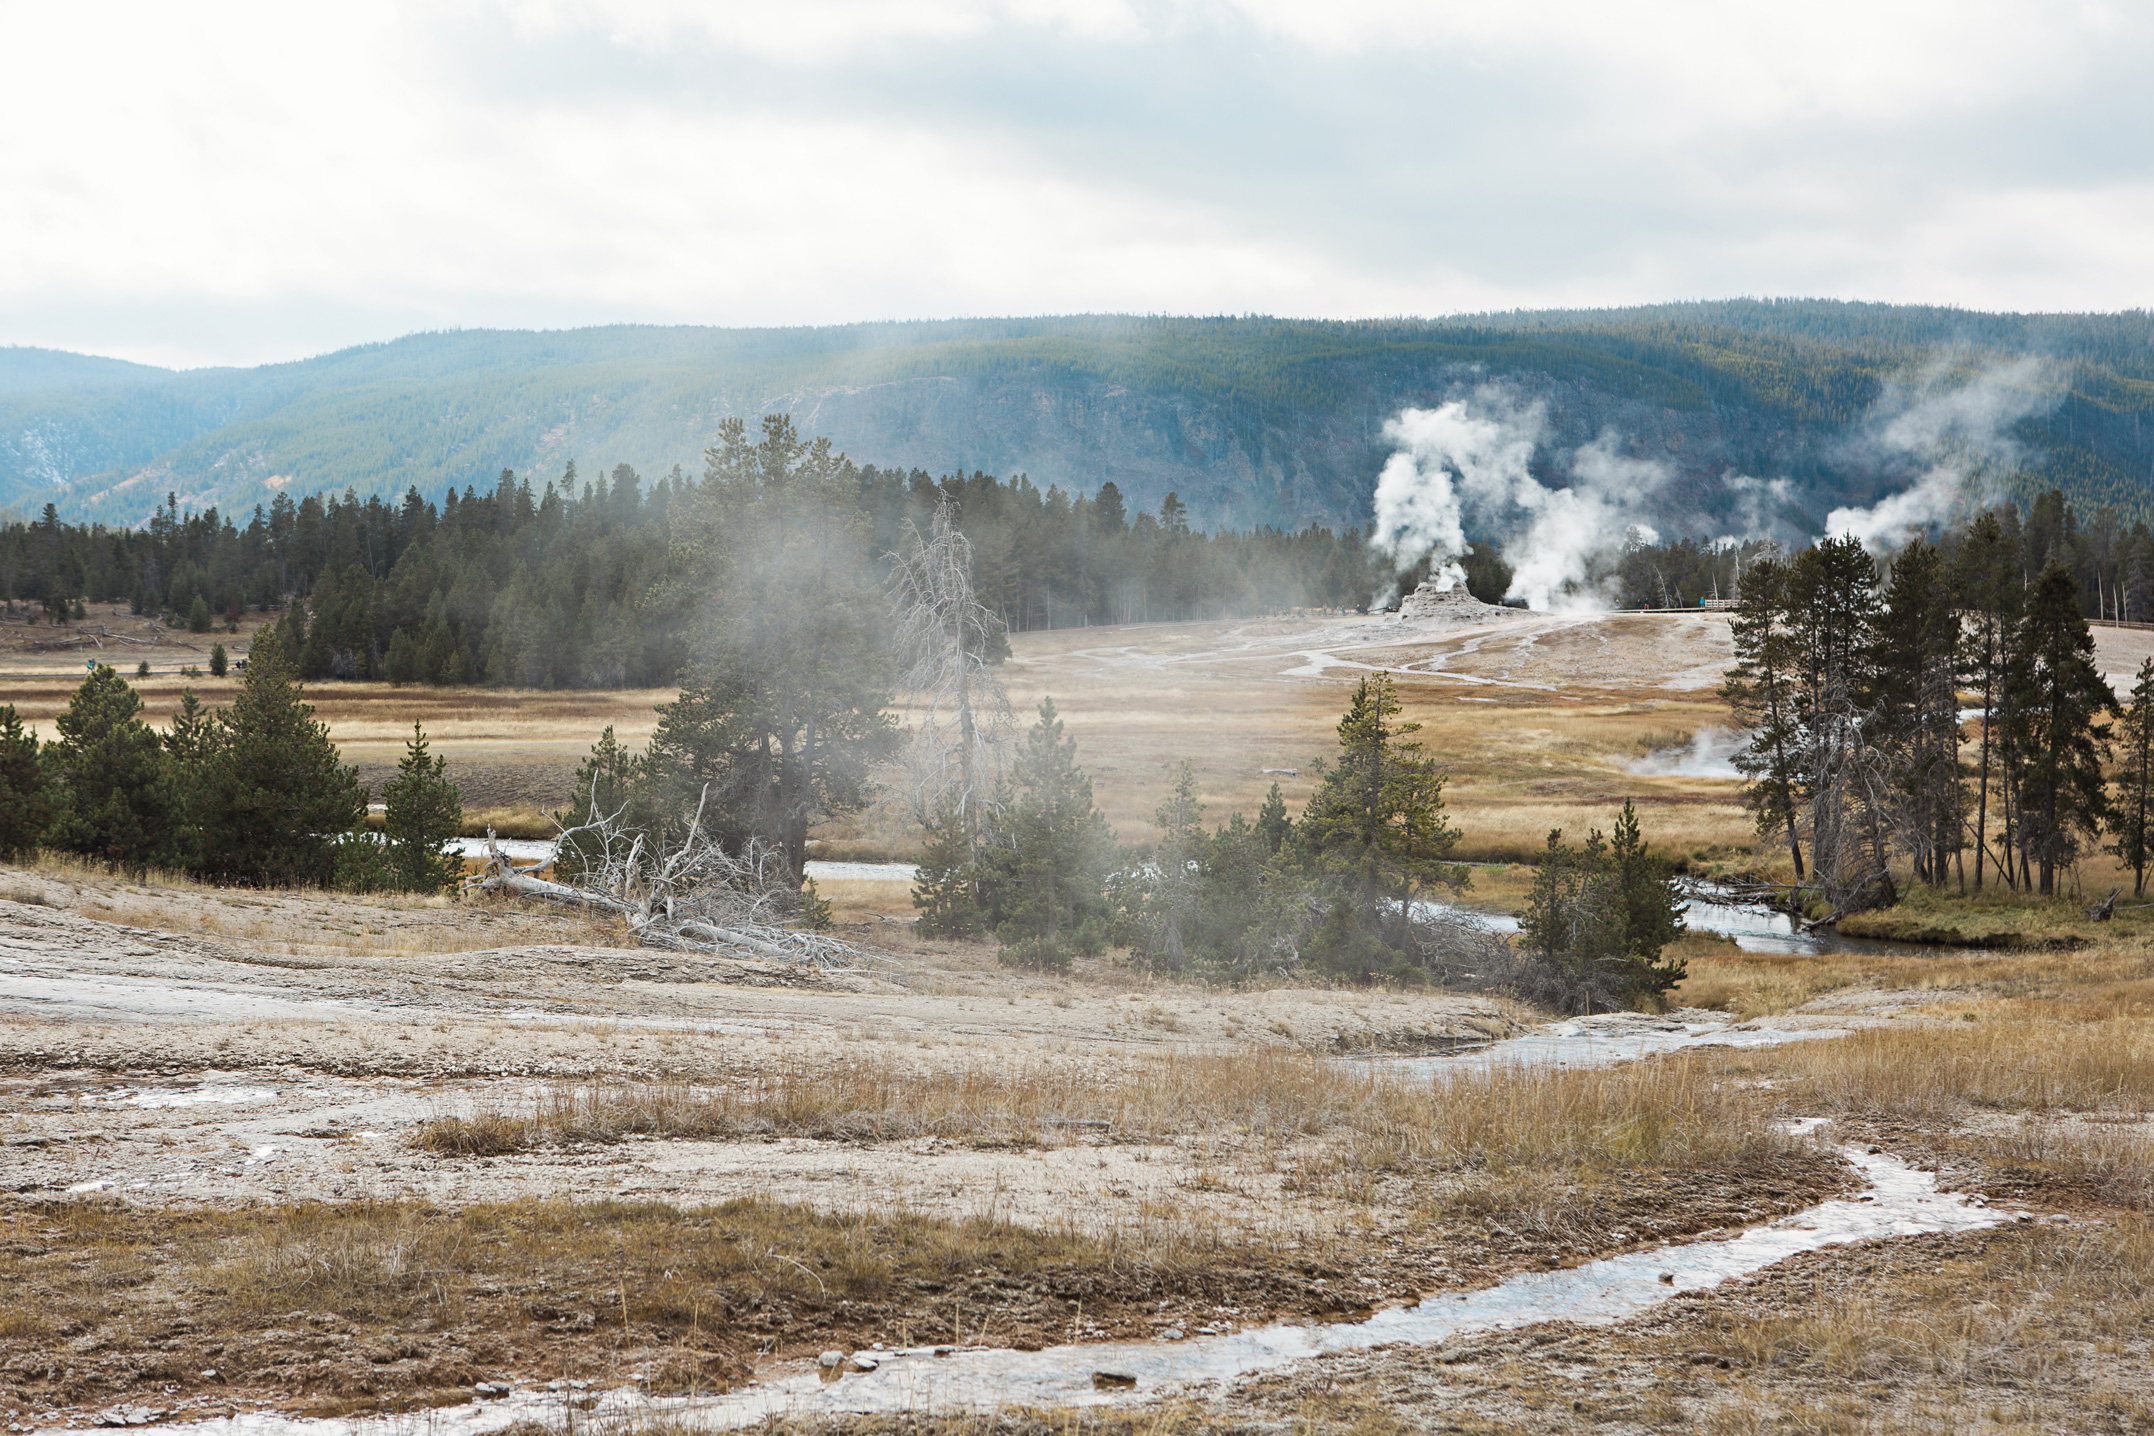 CindyGiovagnoli_road_trip_Yellowstone_National_Park_Montana_Wyoming_hot_springs_geyser_Old_Faithful_Grand_Prismatic-005.jpg